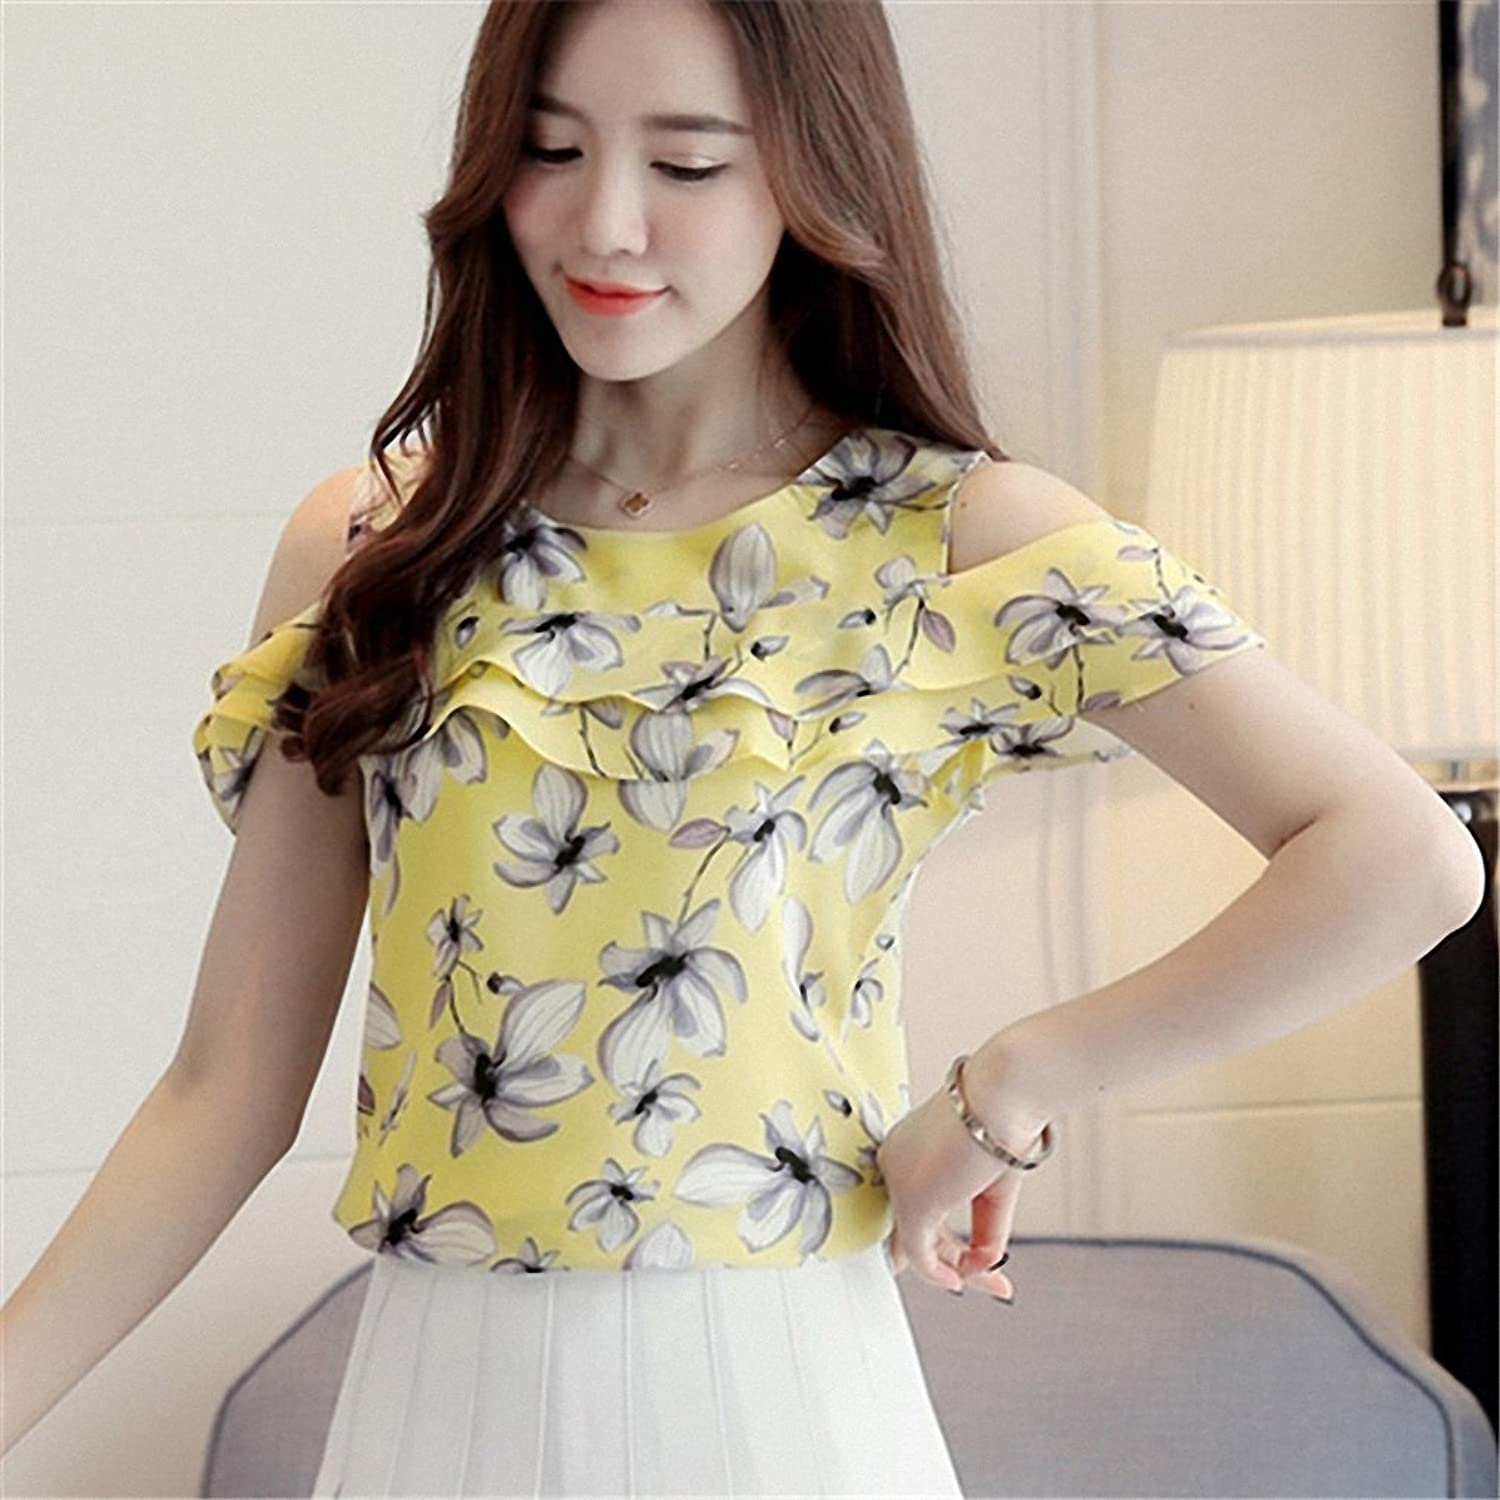 Goexi Womens Blouse Shirts O-Neck Short Butterfly Sleeve Casual Ruffles Chiffon Shirt Floral Print Loose Tops at Amazon Womens Clothing store: